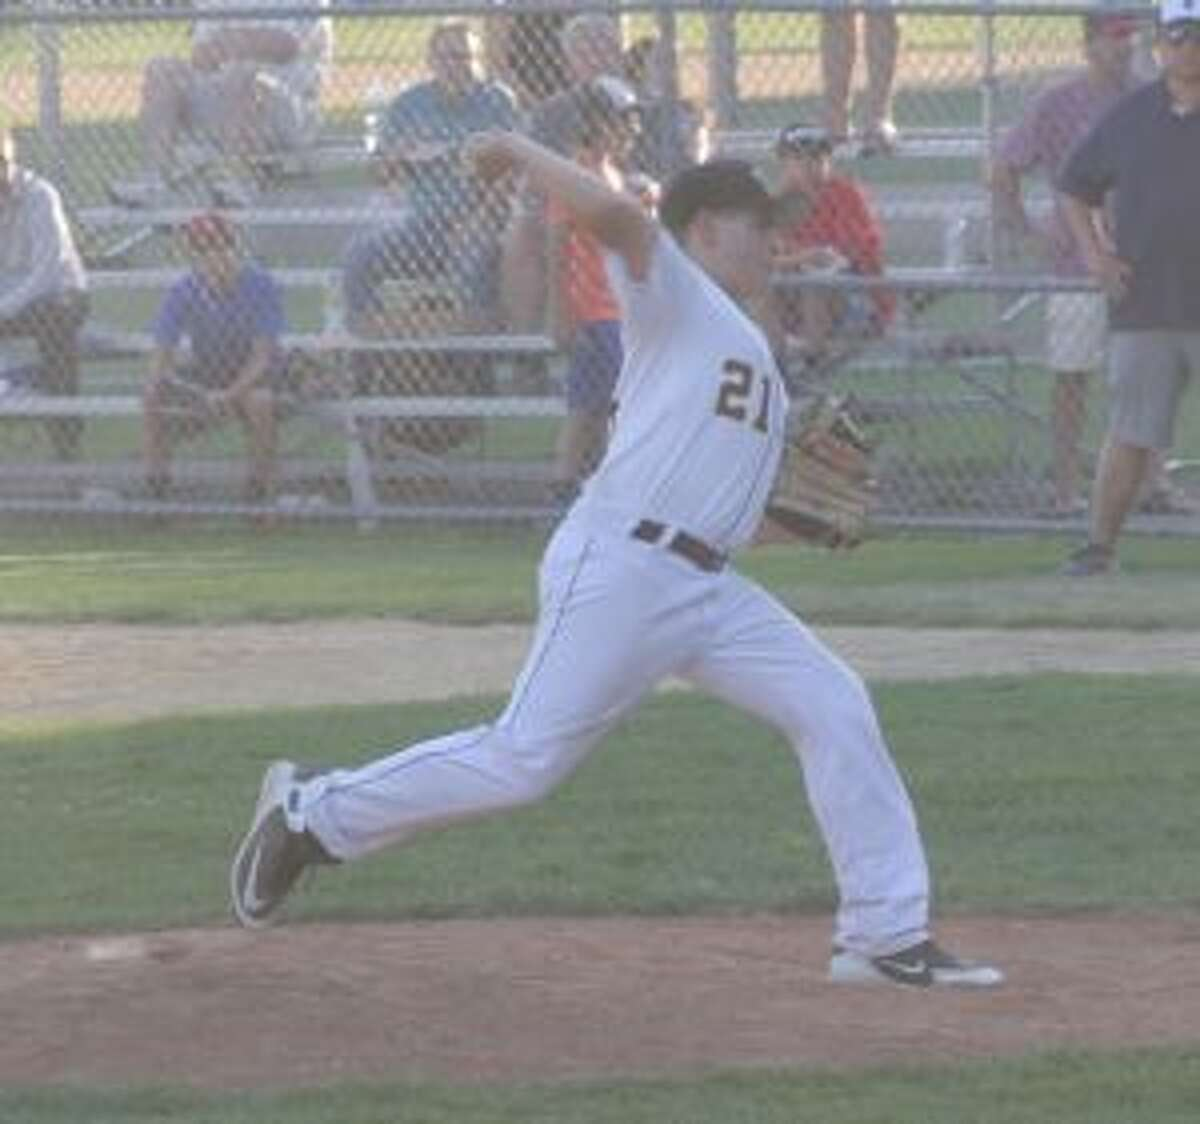 Trumbull's Jake Colucci was outstanding pitching in relief